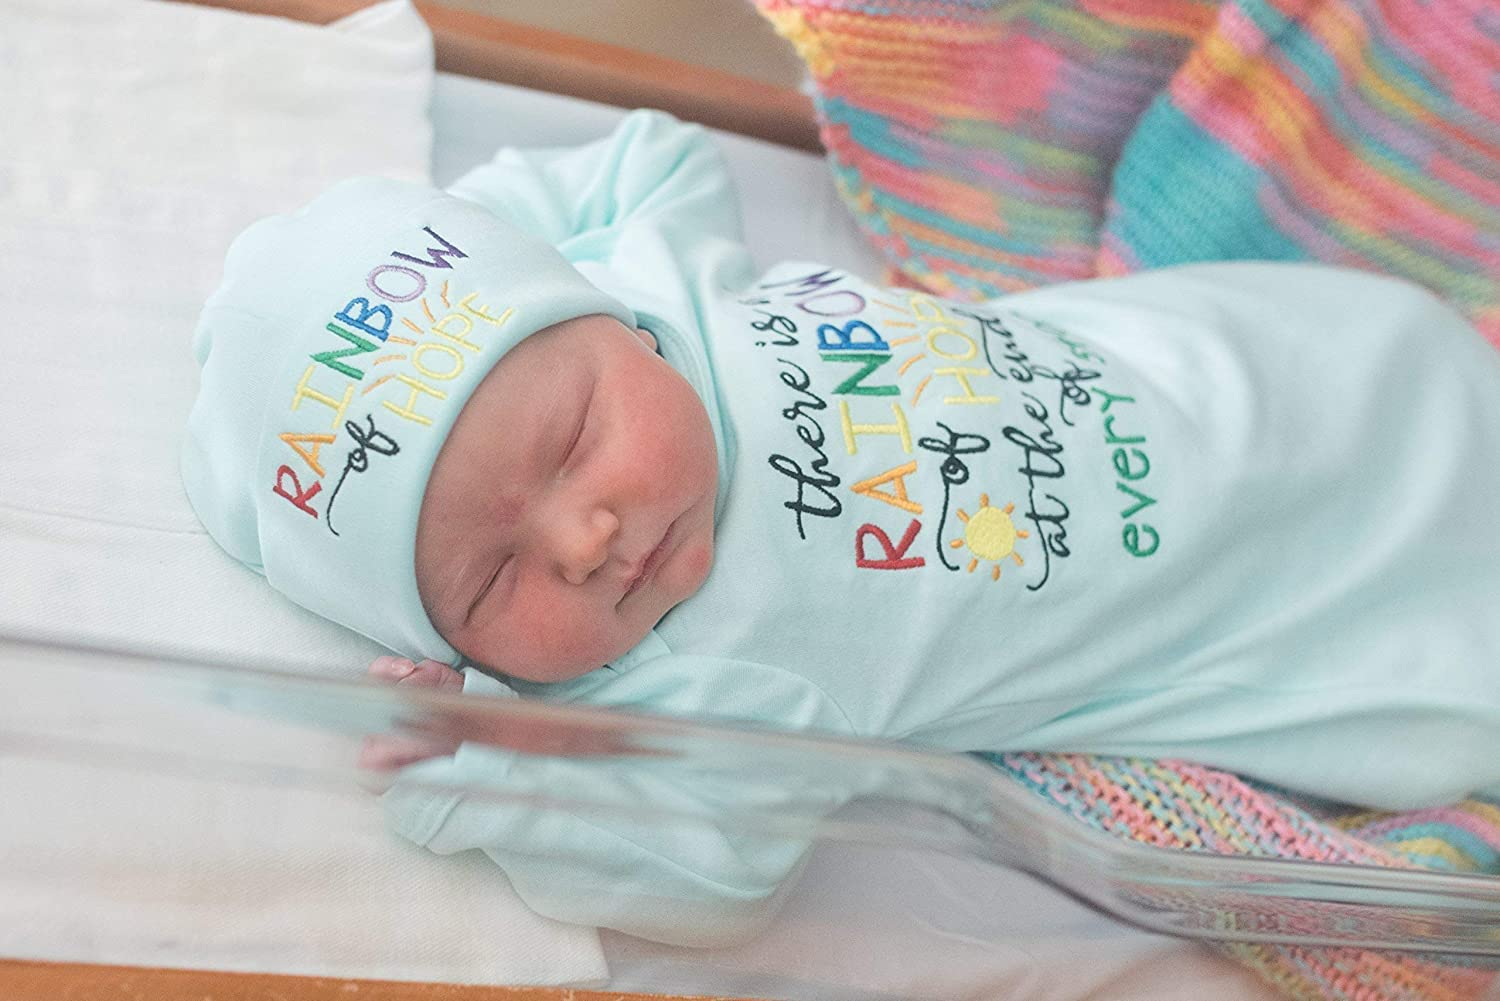 Newborn Baby Unisex Infant Gown and Hat Set- Rainbow Baby - Baby Shower  Gift - larger image 39728124b578